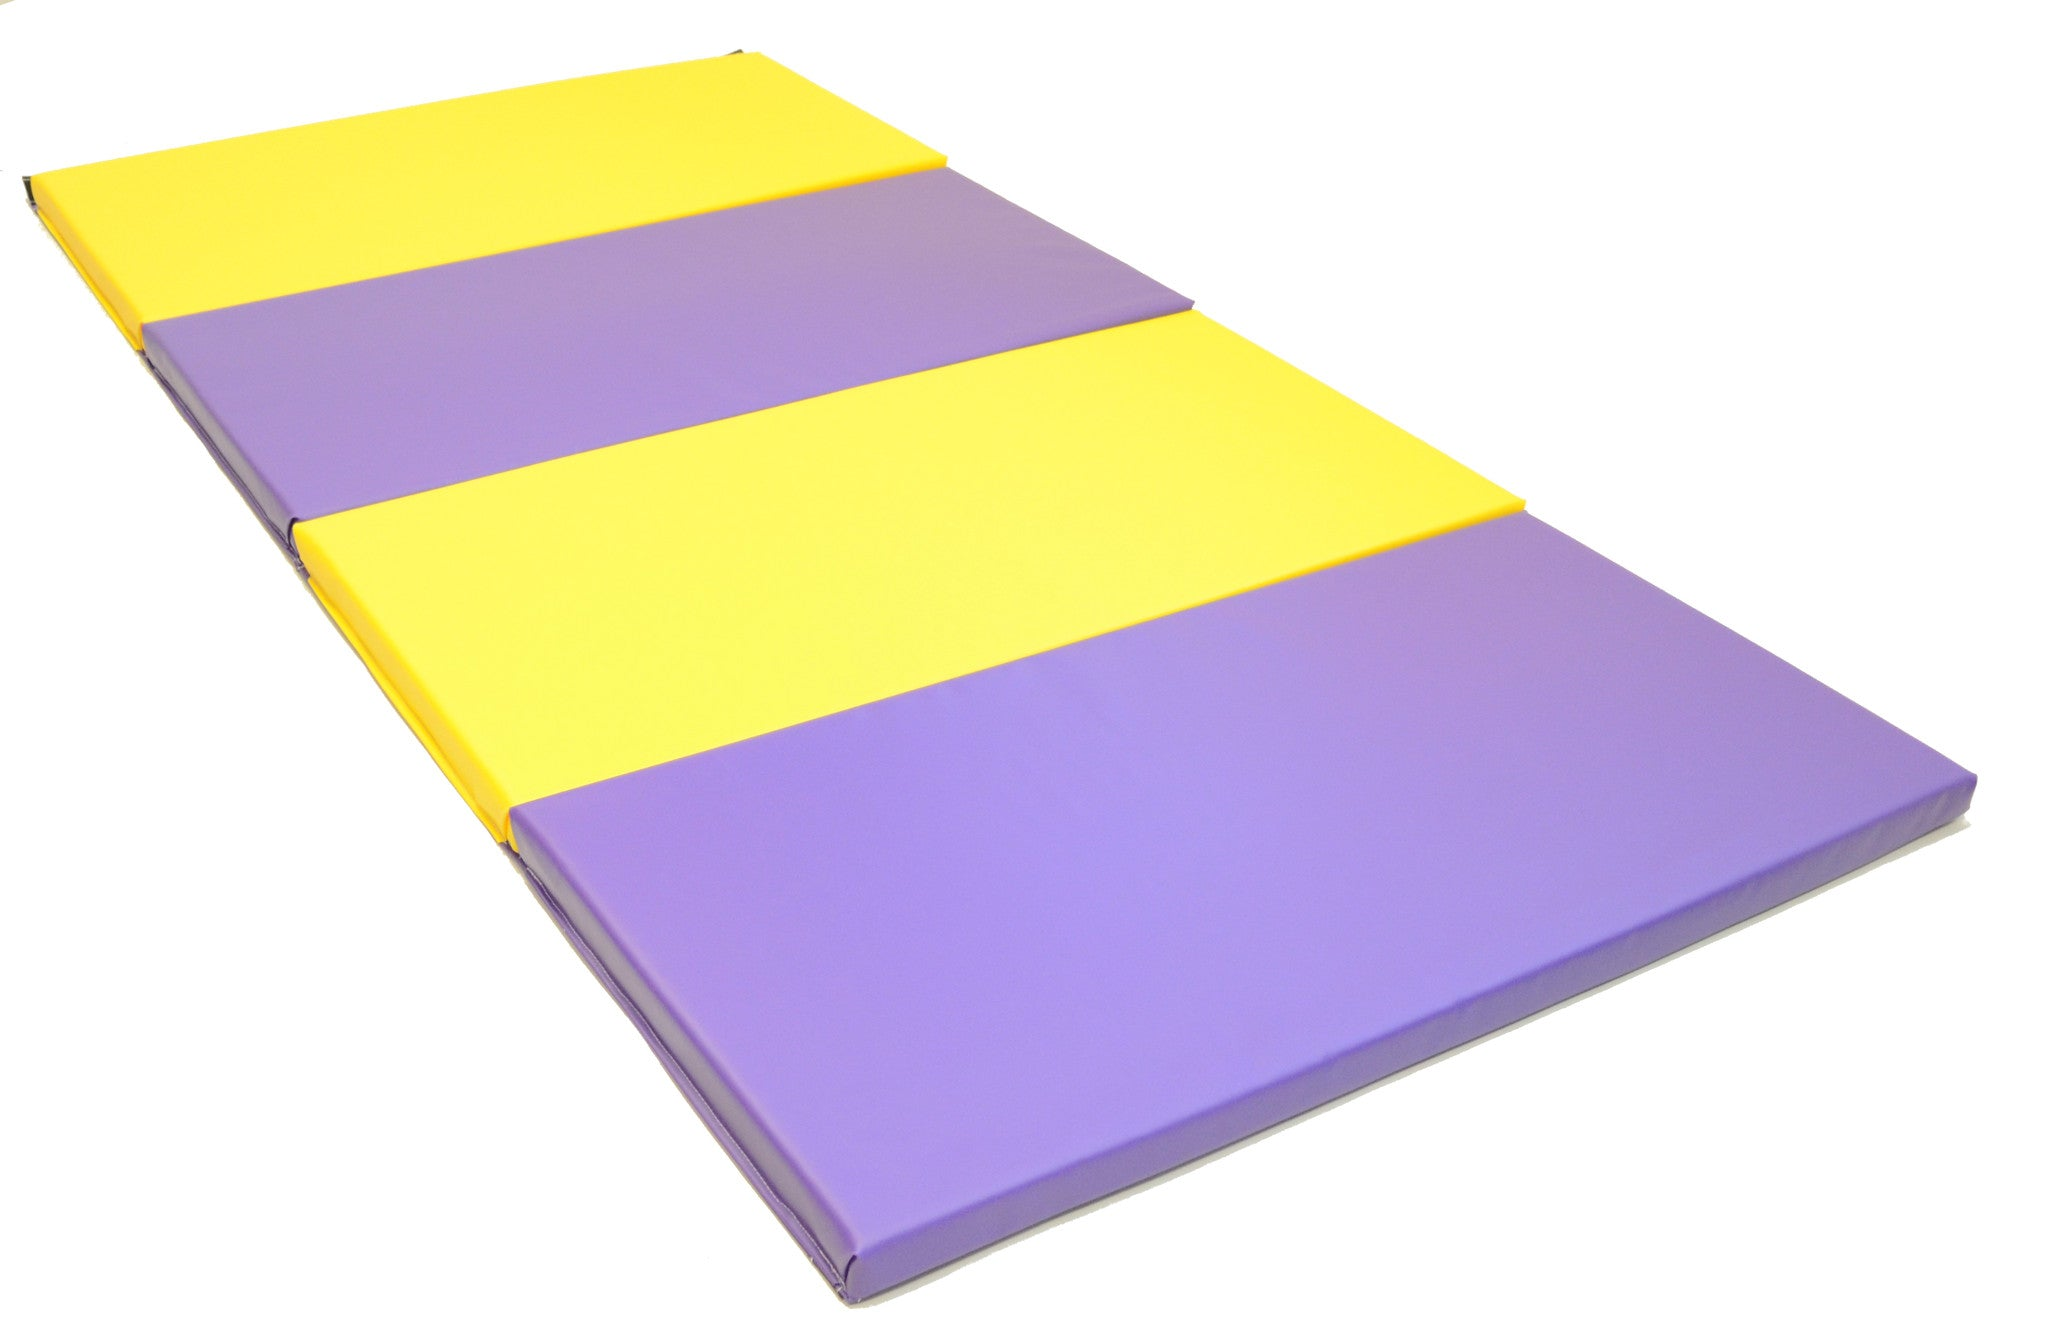 mats mat pin in sale wholesaler are manufacturer yoga wrestling for best delhi com we india designes matsindia supplier different the